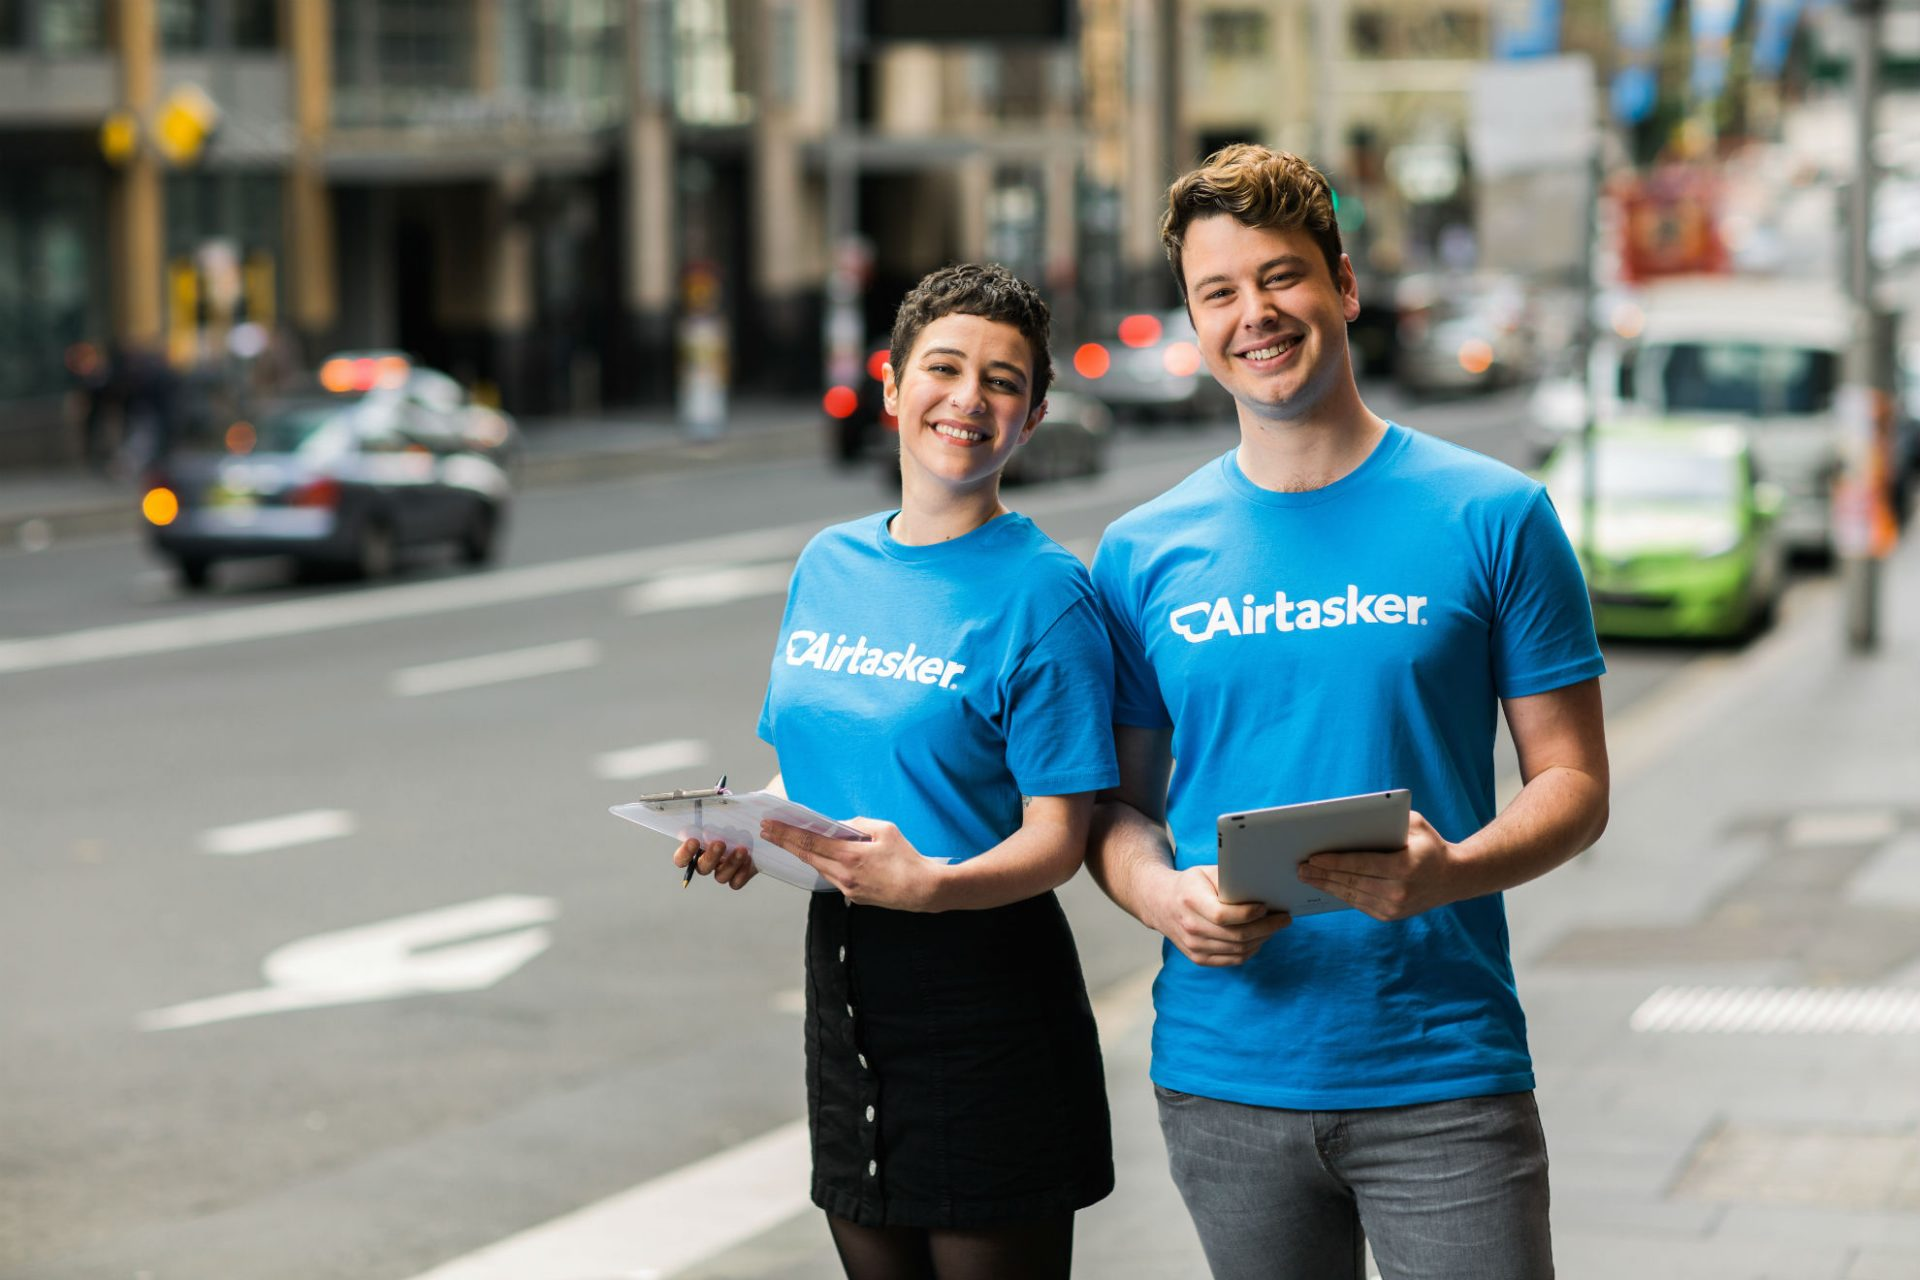 An Update on Airtasker, Launched in Leeds This Week | Leeds